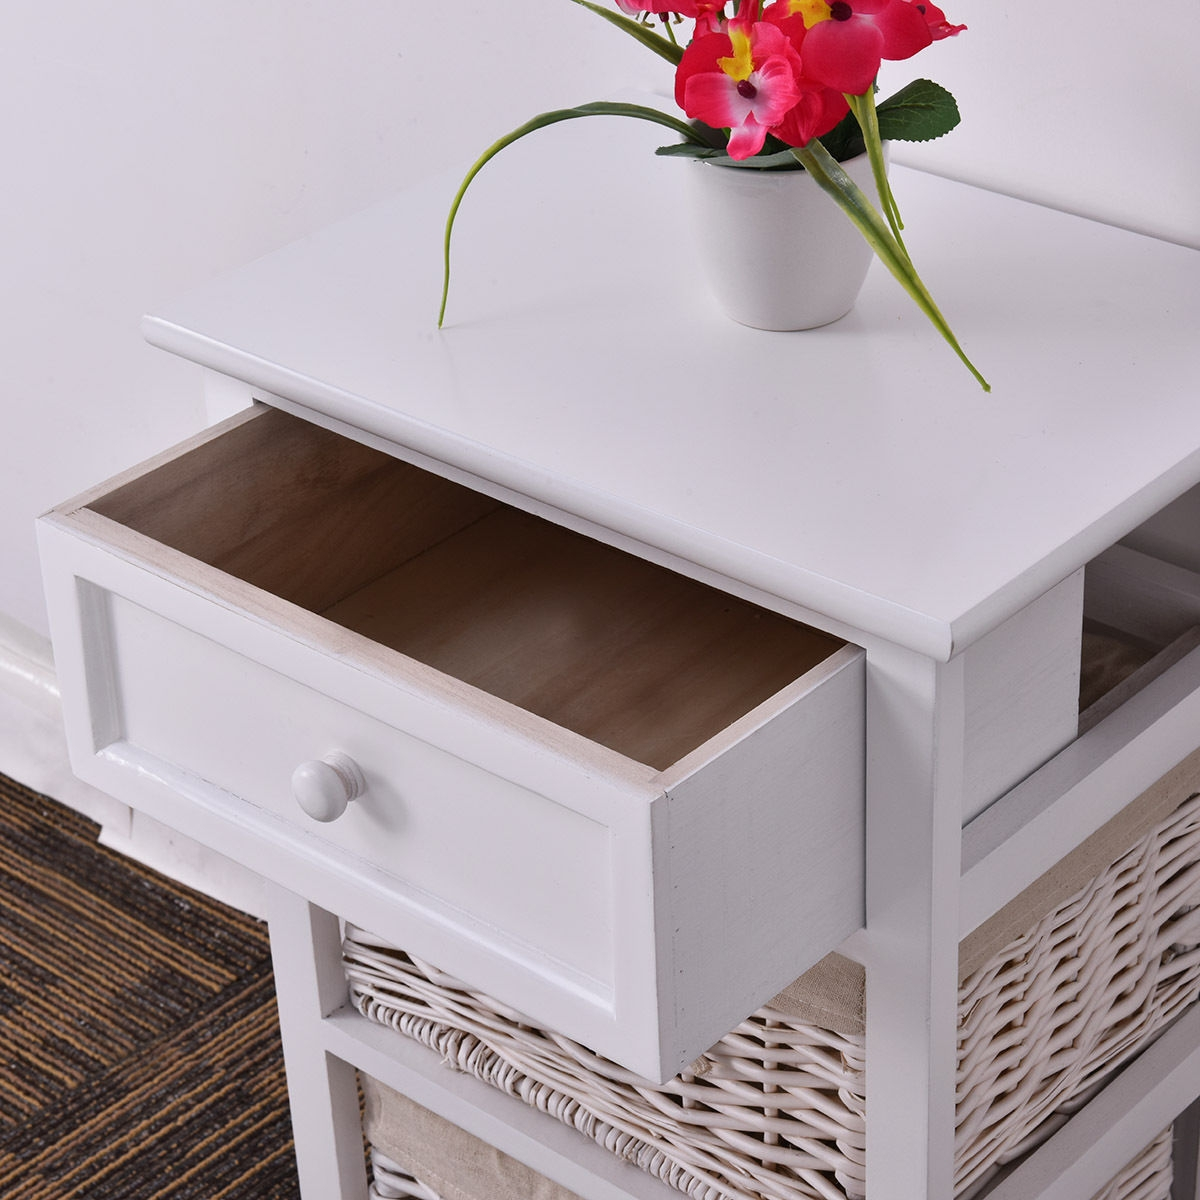 Black/White 3 Tiers 1 Drawer Night Stand